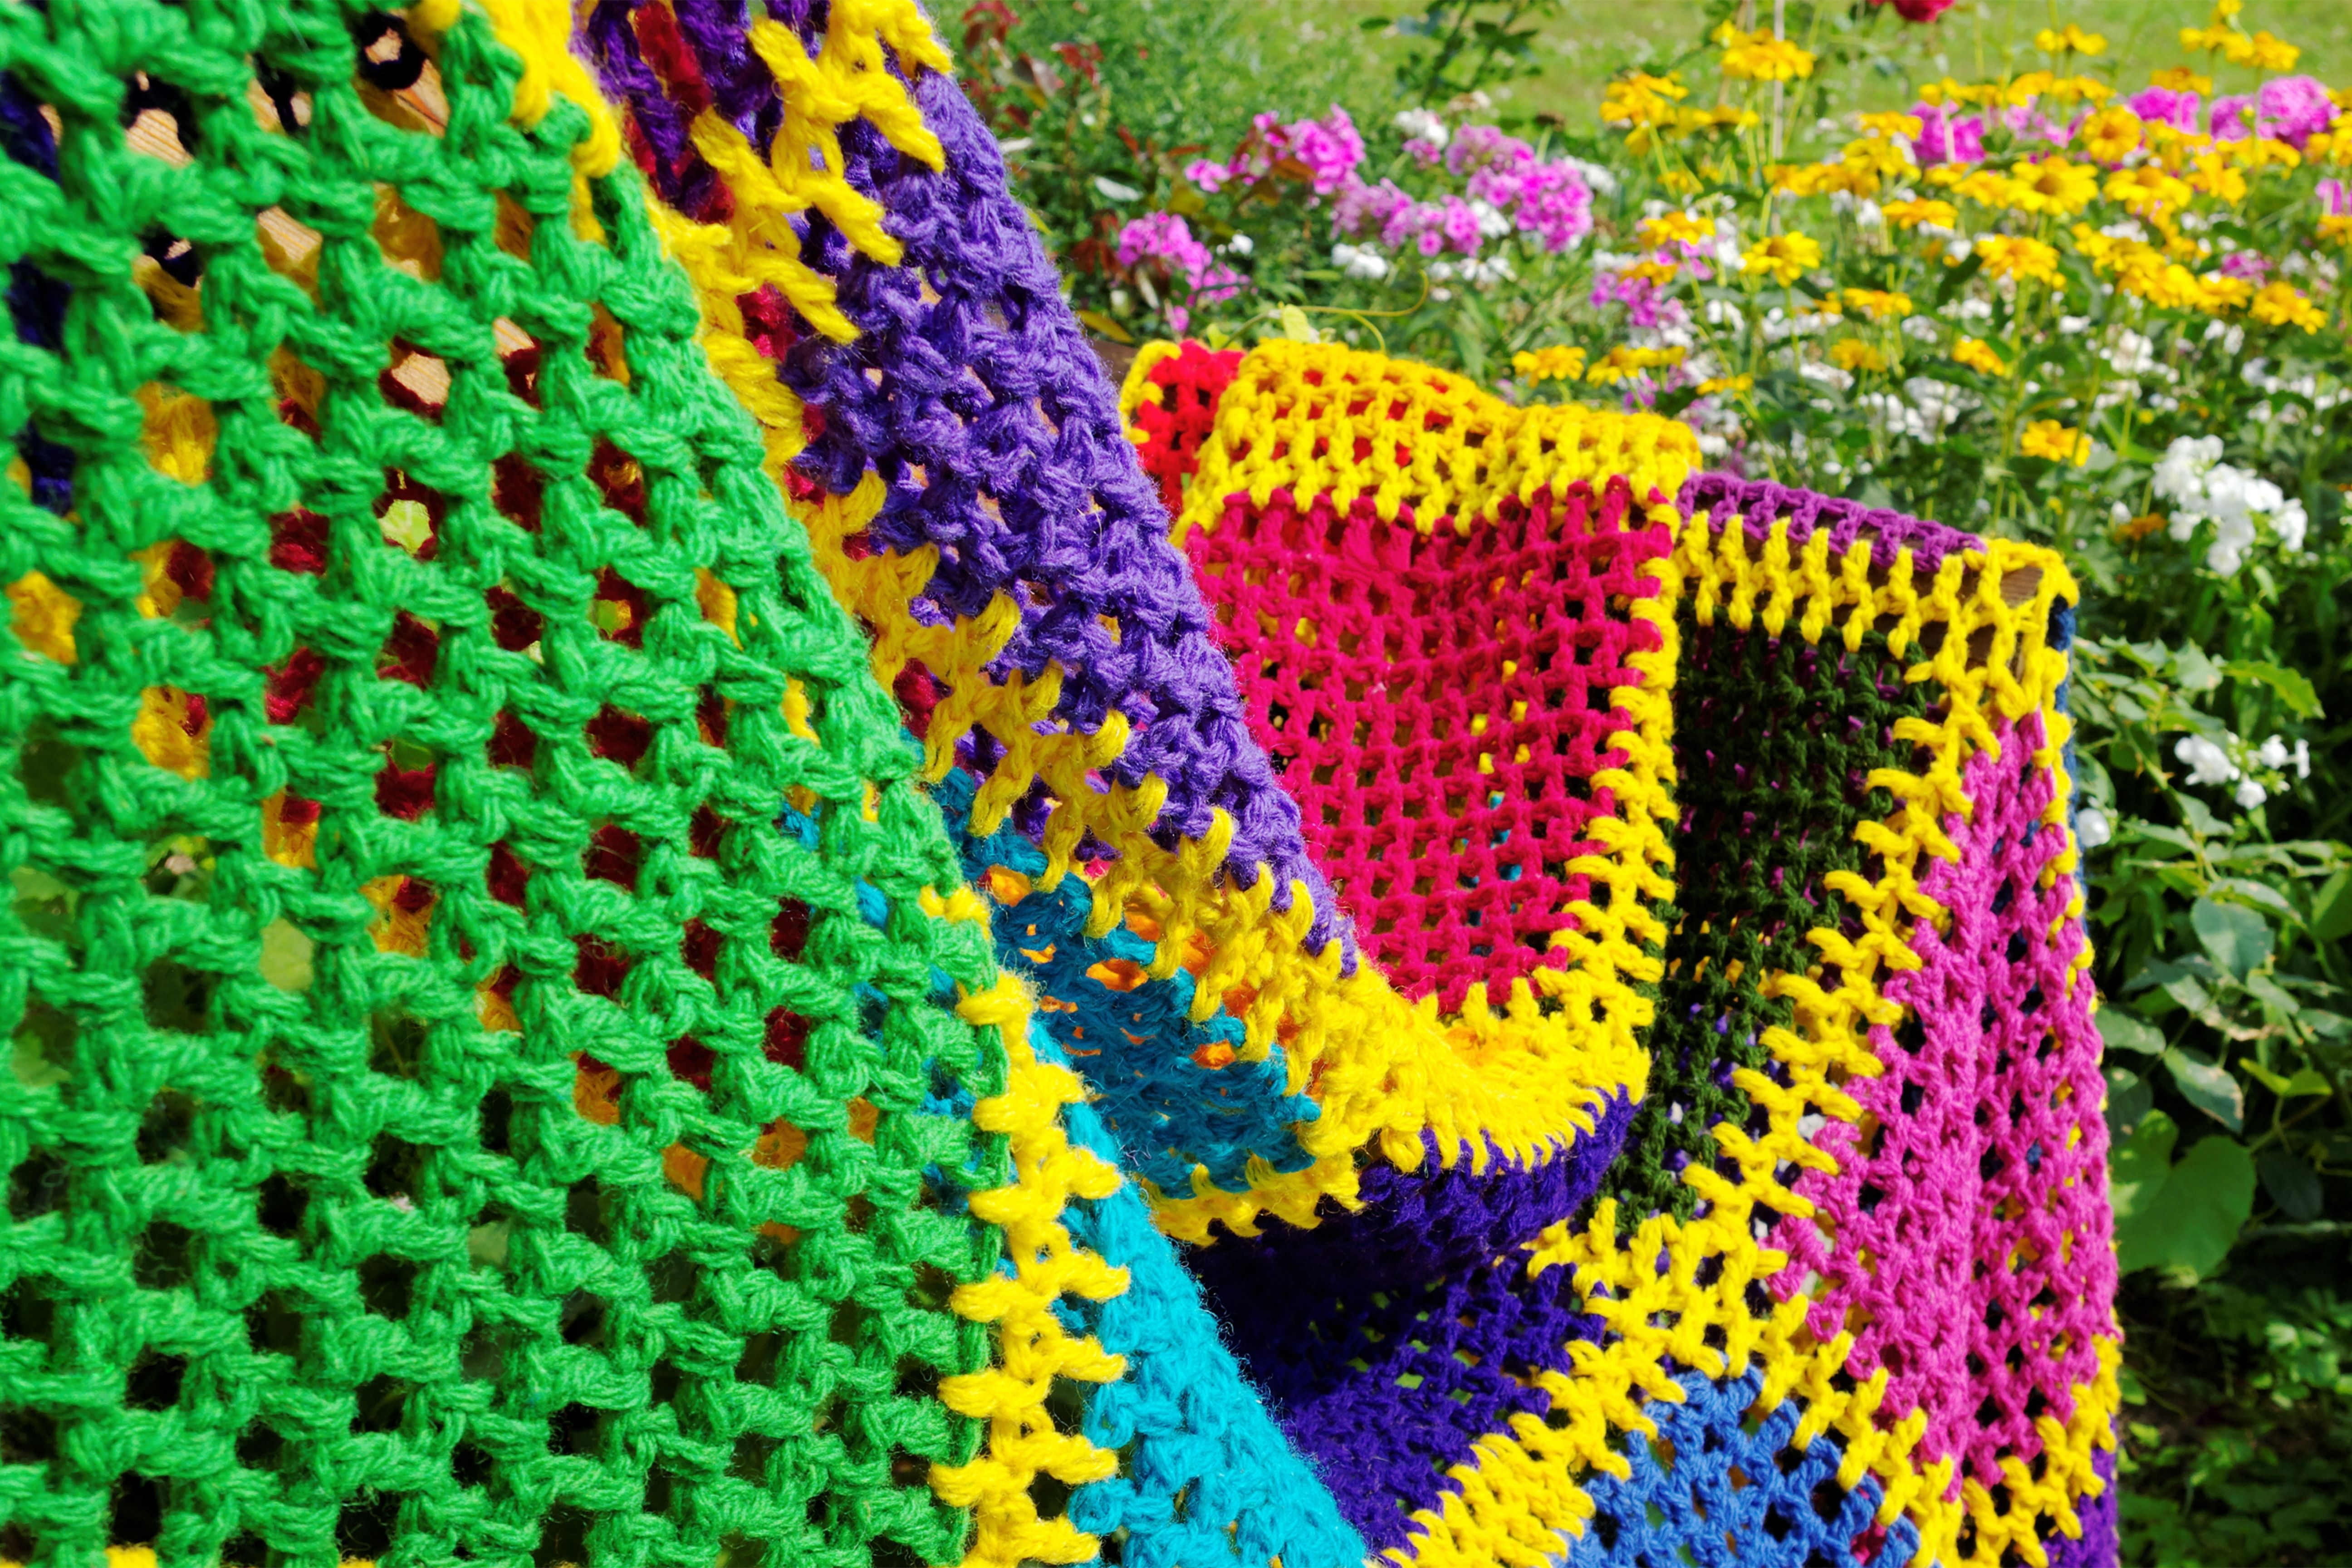 How Many Hours Does It Take to Crochet a Queen Size Blanket